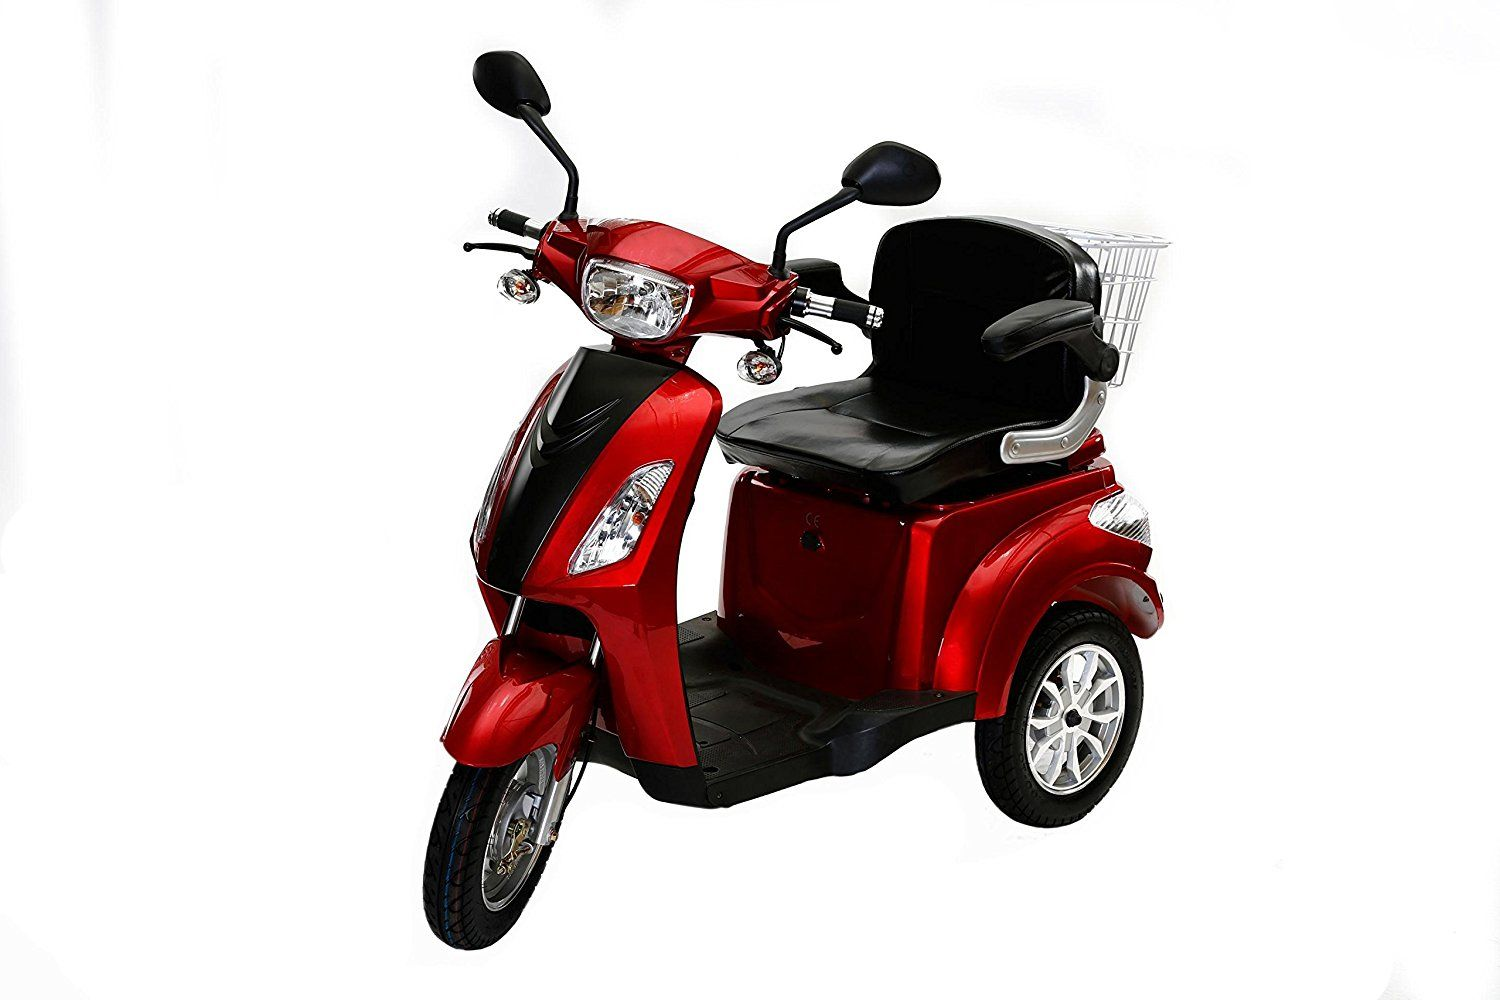 rolektro e trike 25 rot mit eu zulassung elektroroller e scooter 600 w motor 50 km reichweite 25. Black Bedroom Furniture Sets. Home Design Ideas